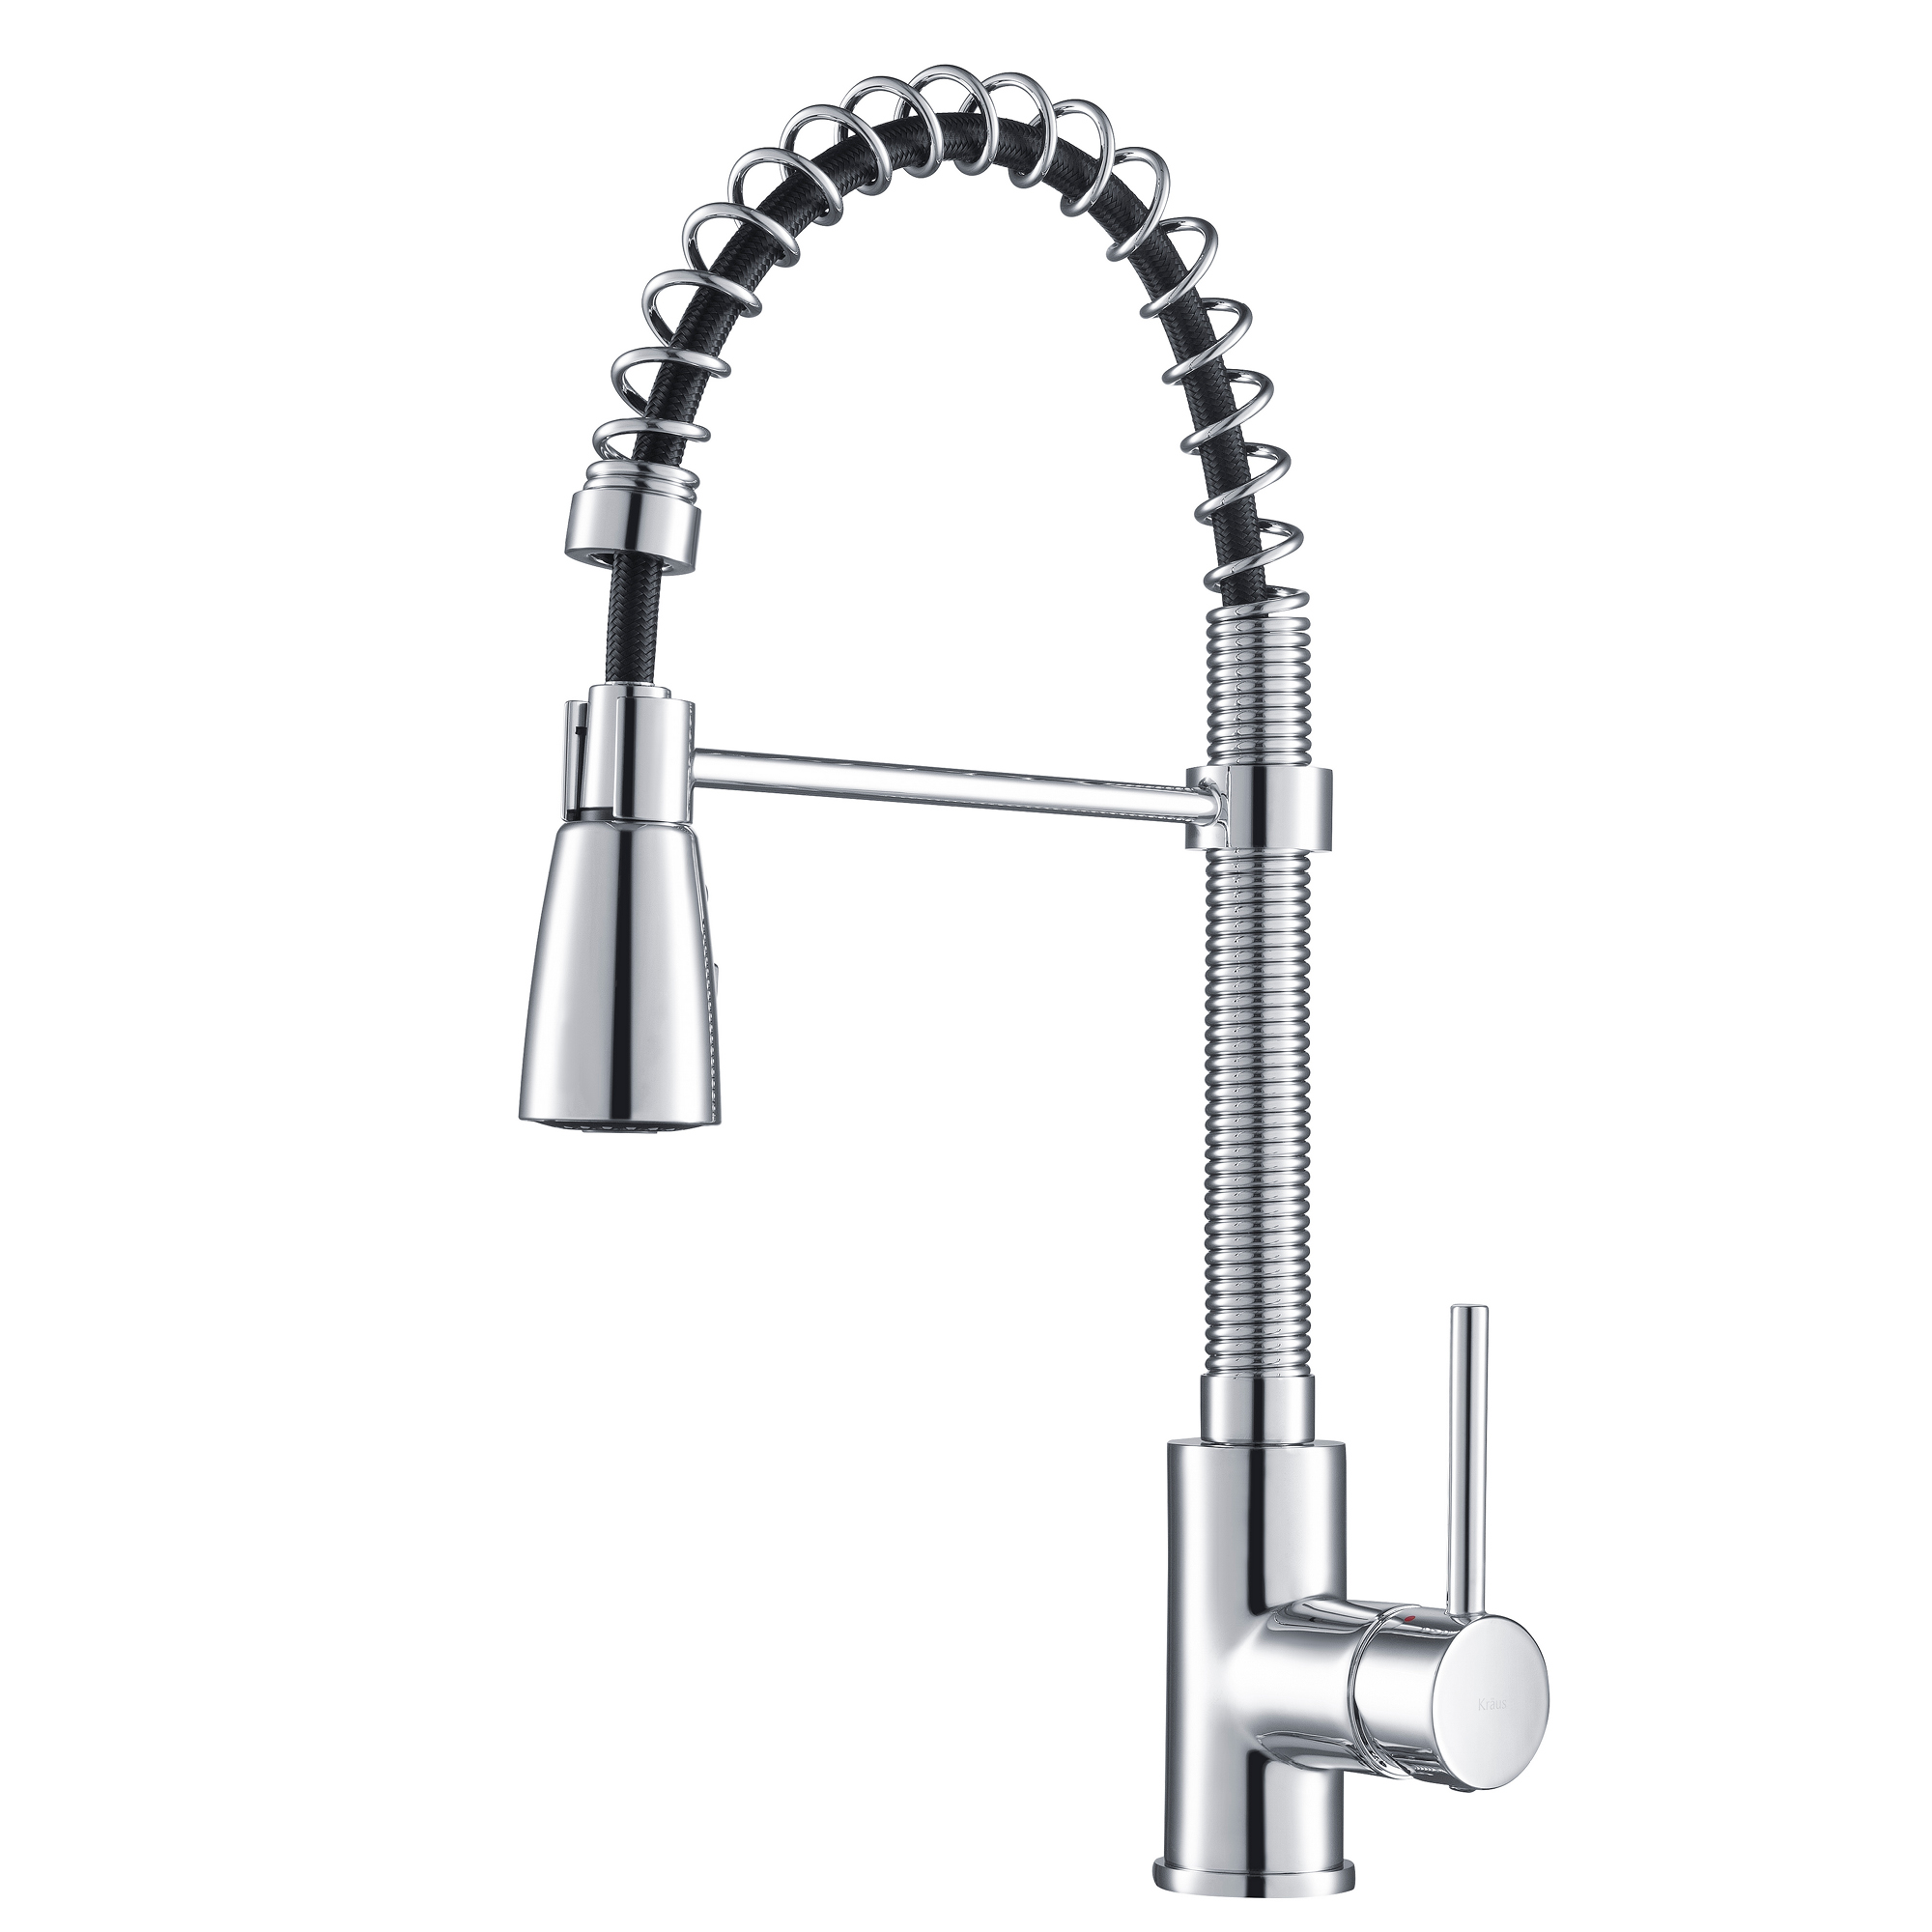 https www walmart com ip kraus commercial style kitchen faucet with spring spout and 3 function pull down sprayer chrome finish 38440060